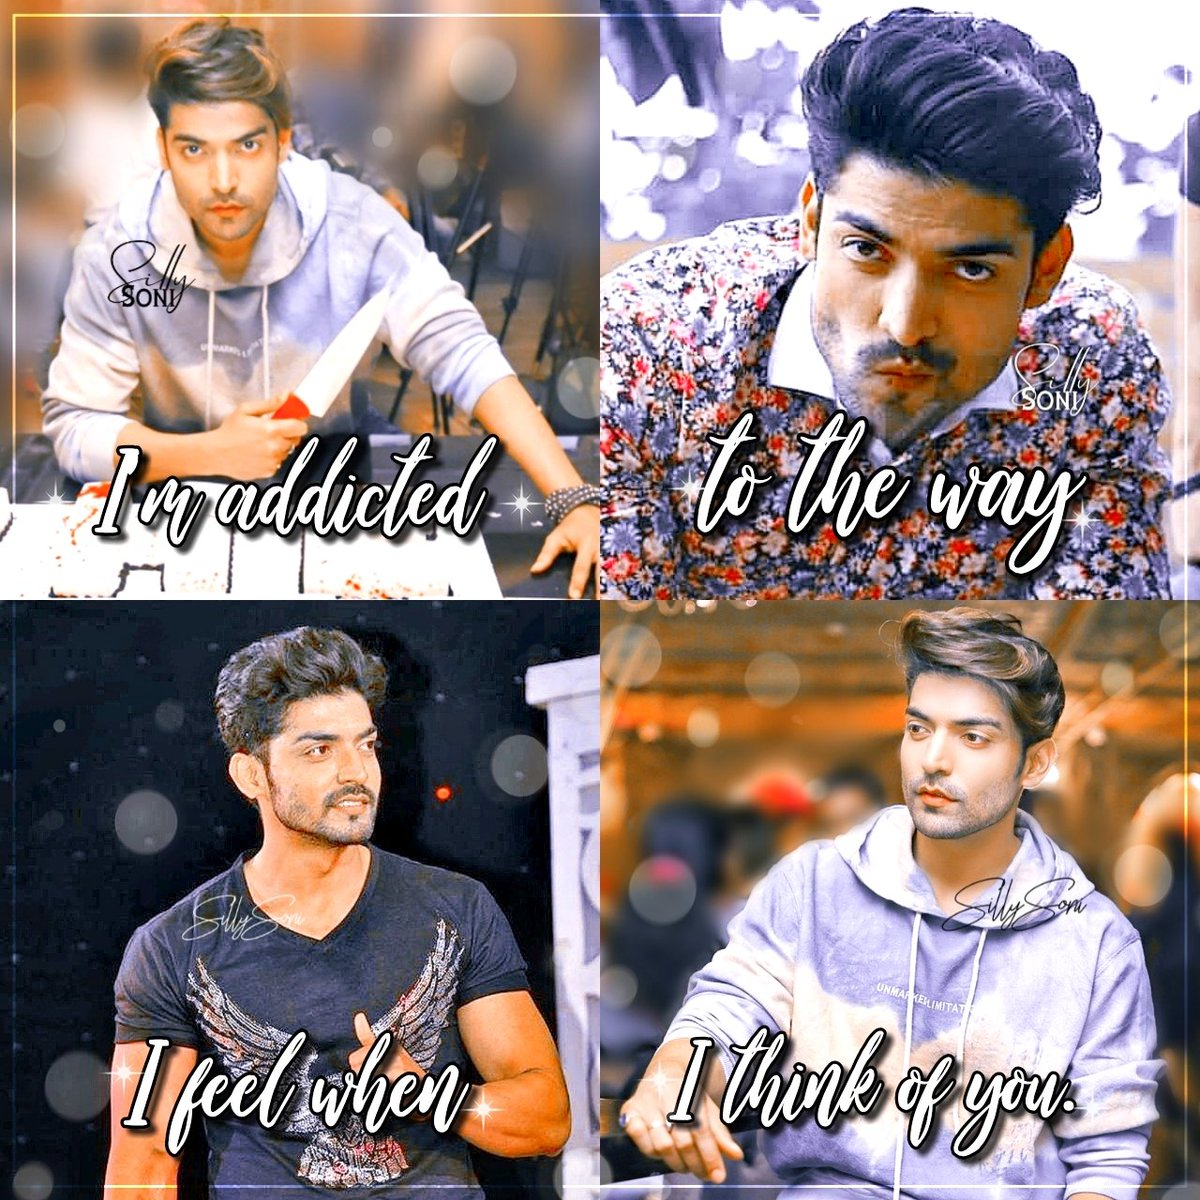 """""""I'm addicted to the way I feel when I think of you"""" 💖  #GurmeetChoudhary https://t.co/9FN8nipTIi"""